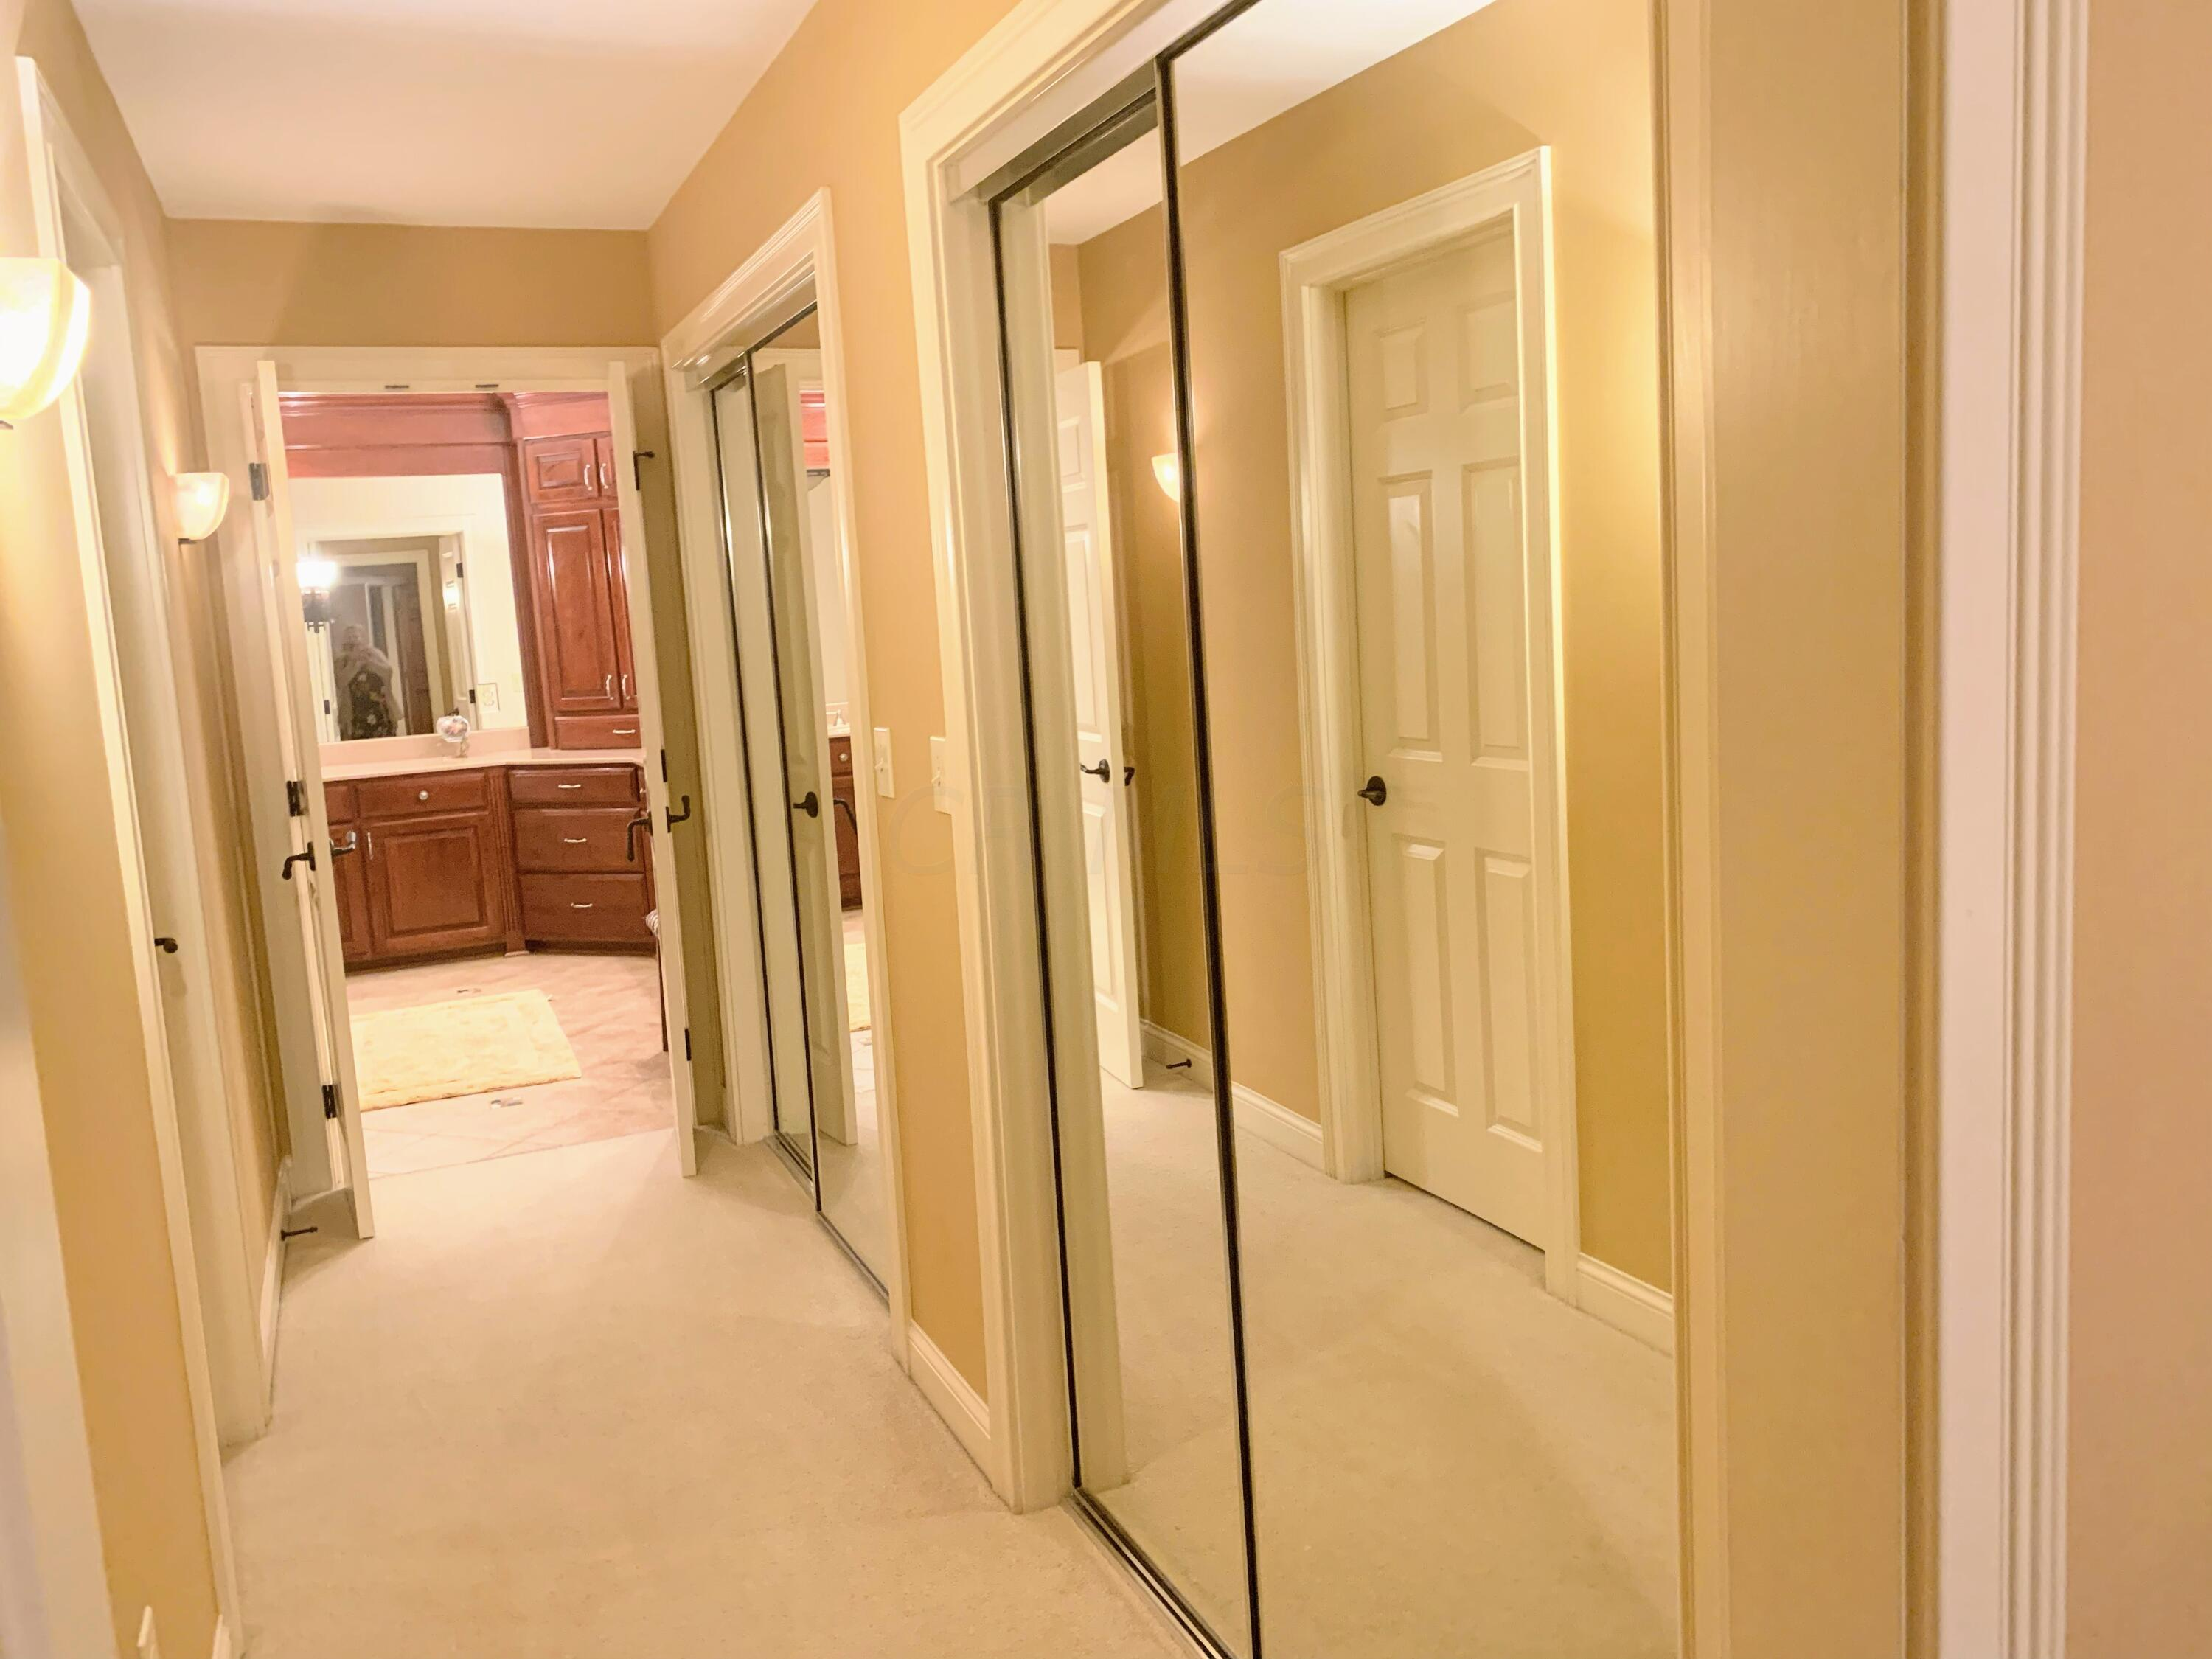 Mirrored Hall of Closets to WOWWW BATH